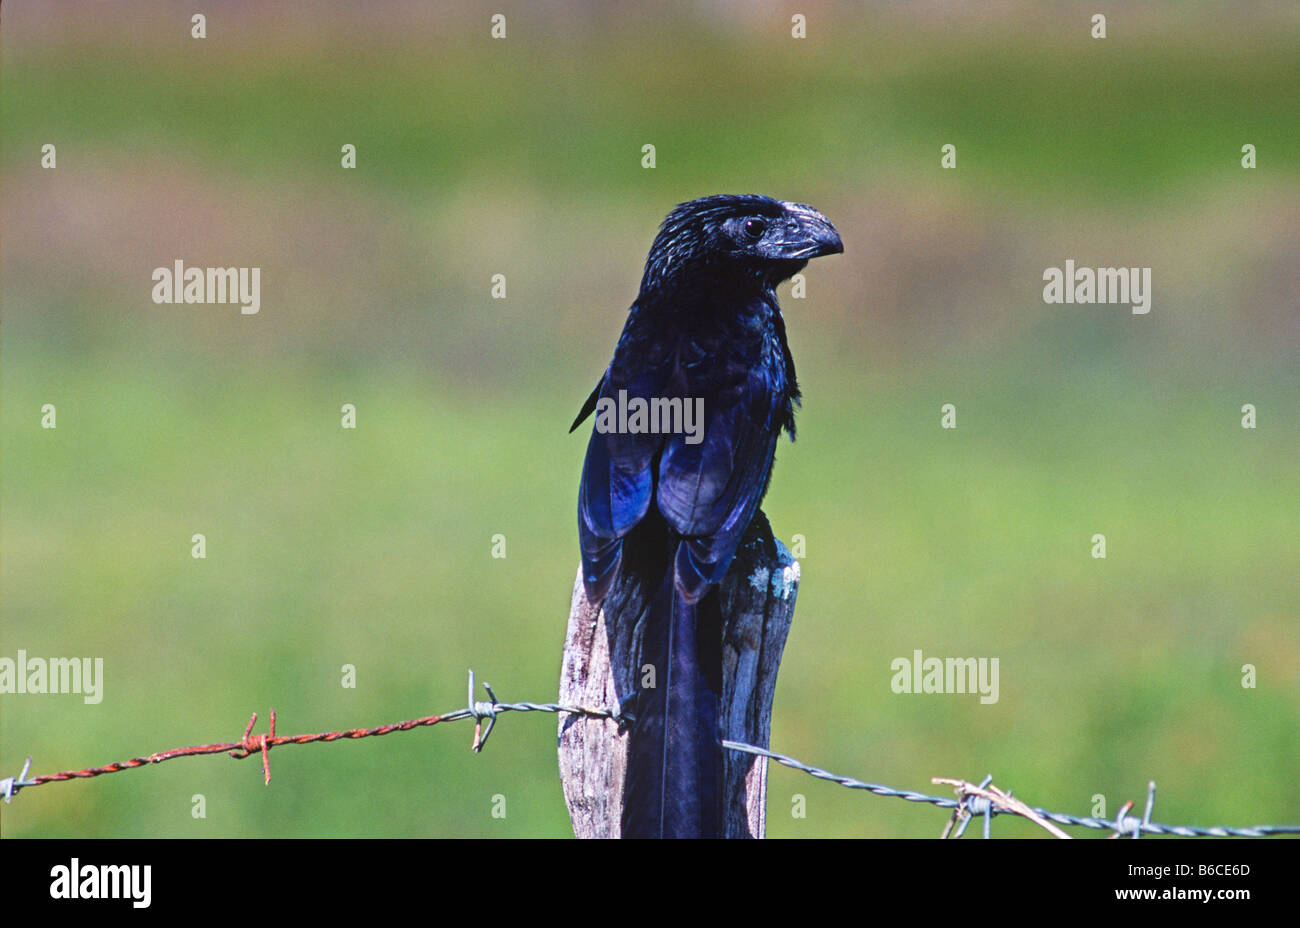 Grooved bill Ani (Crotophaga sulcirostris) with its distinctive humped ridged bill sits on a fence post in Crooked - Stock Image